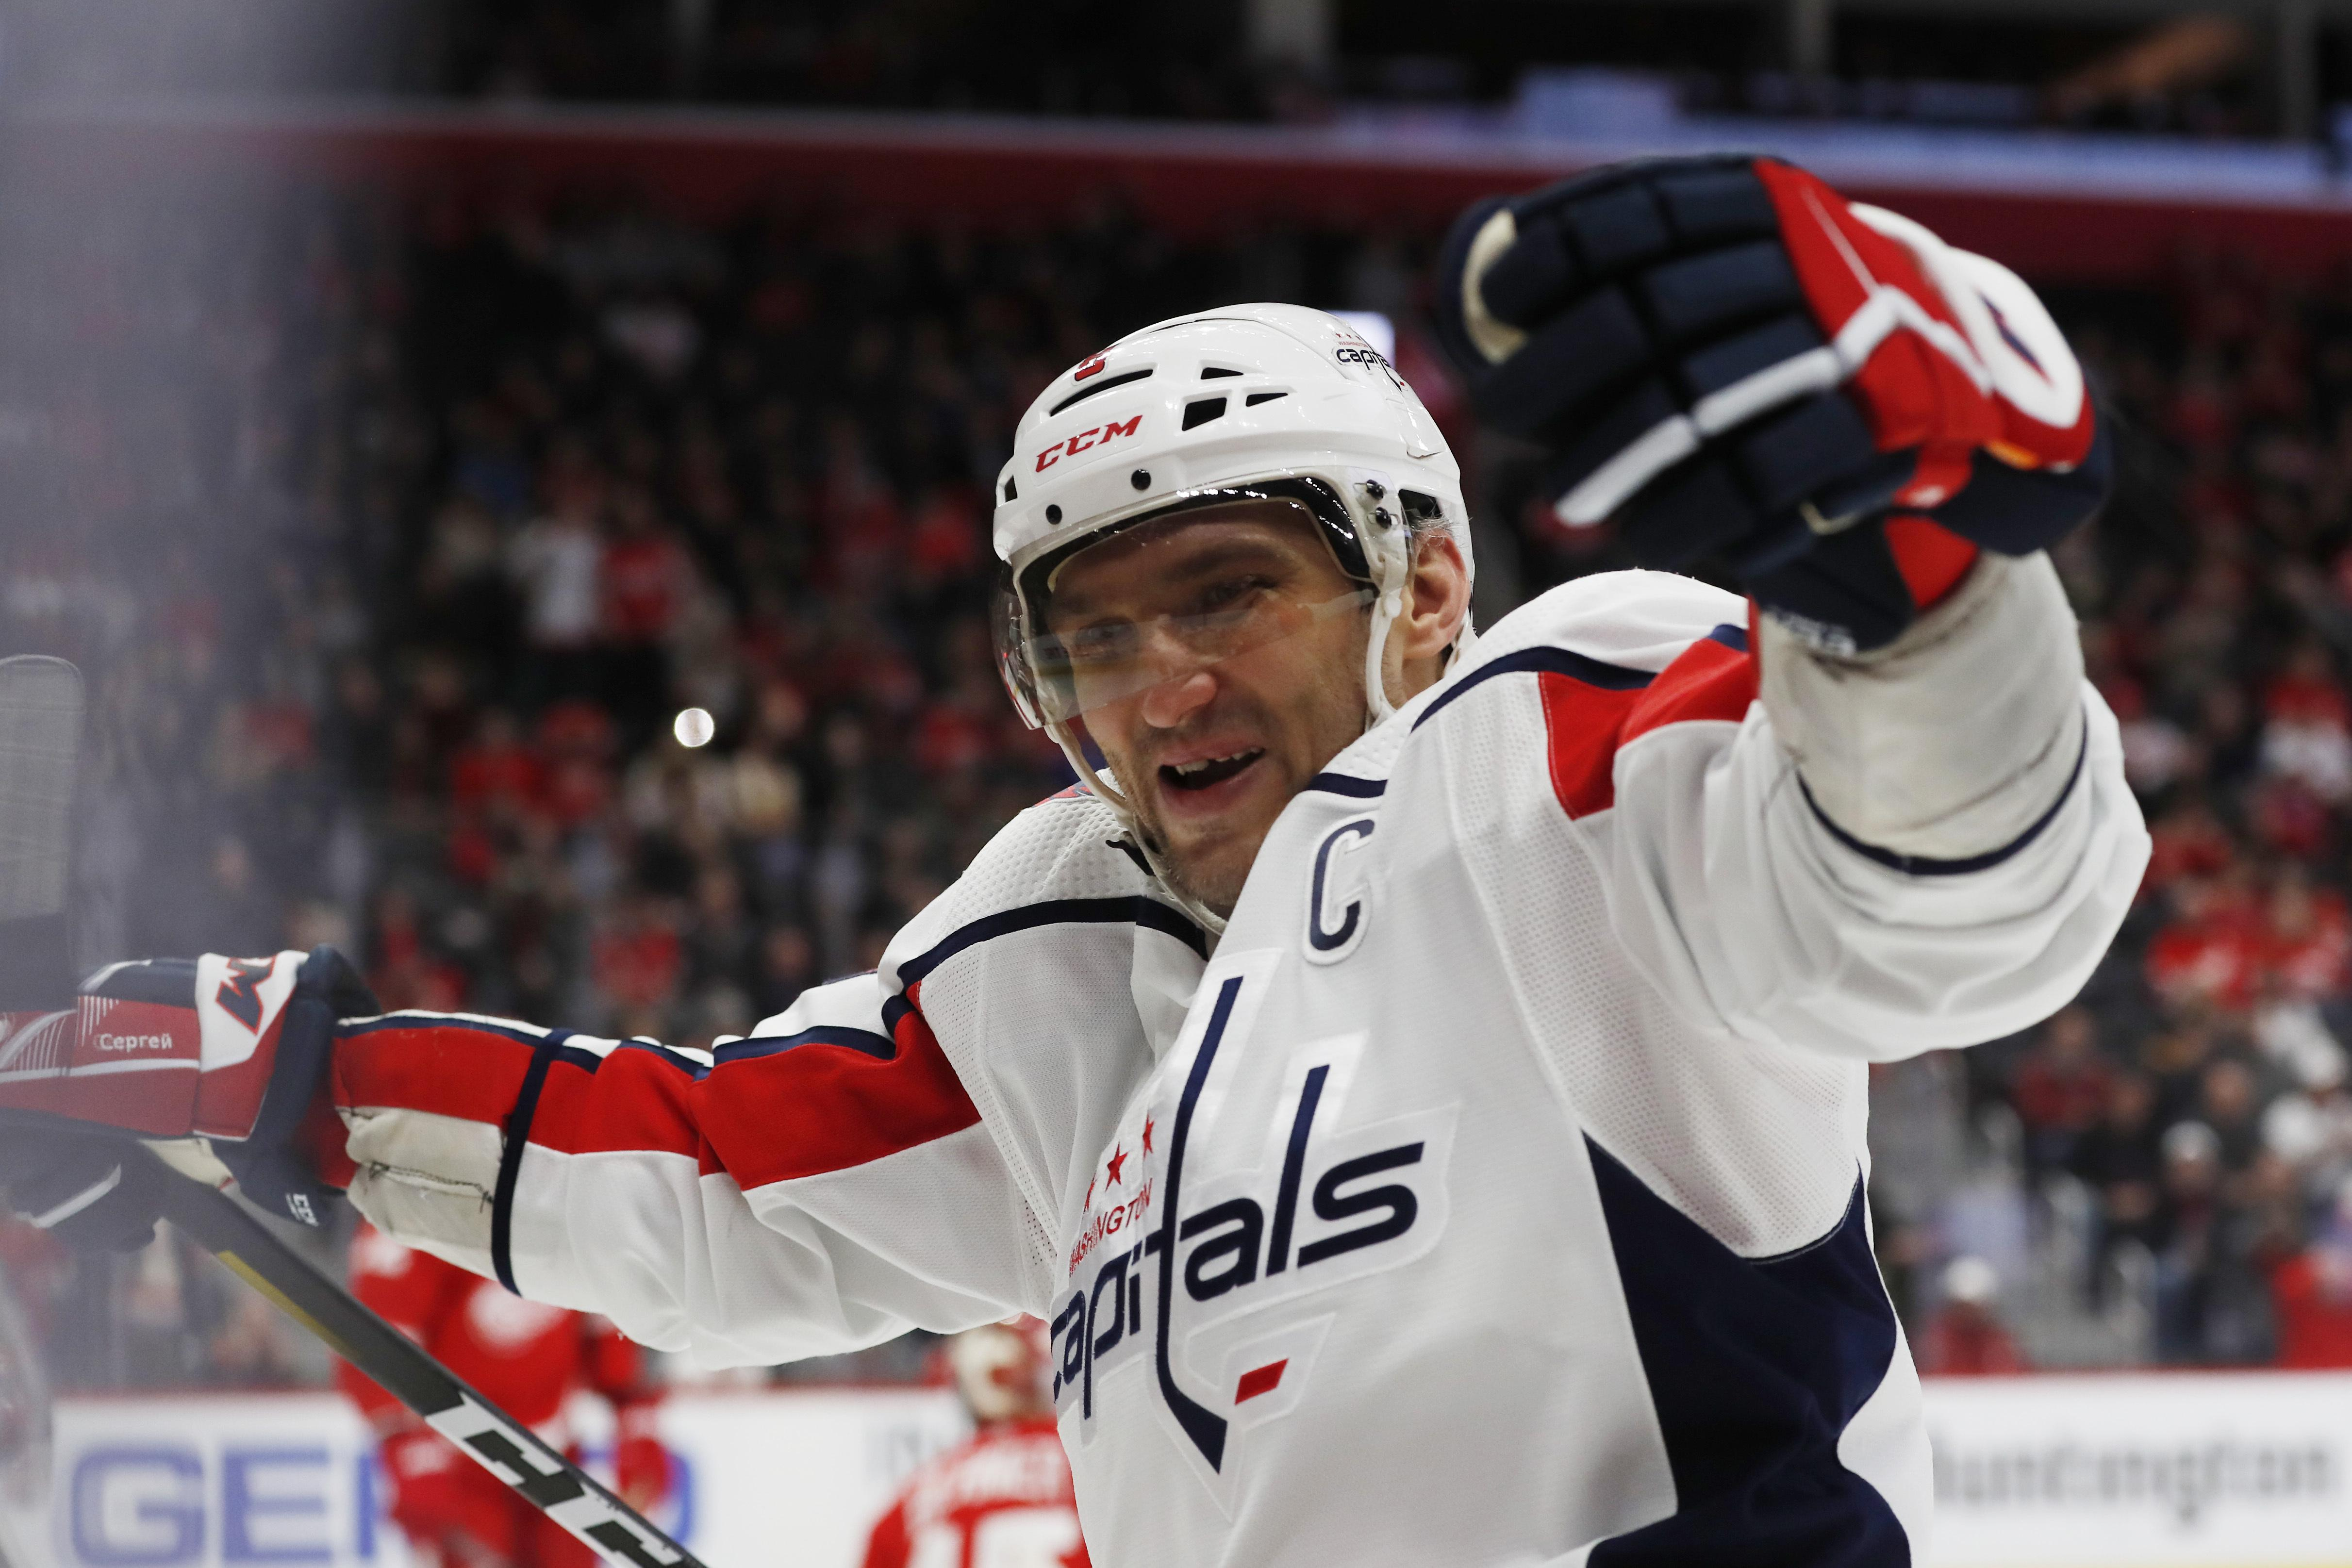 Alex Ovechkin gets hat trick with two empty-netters, Capitals top Red